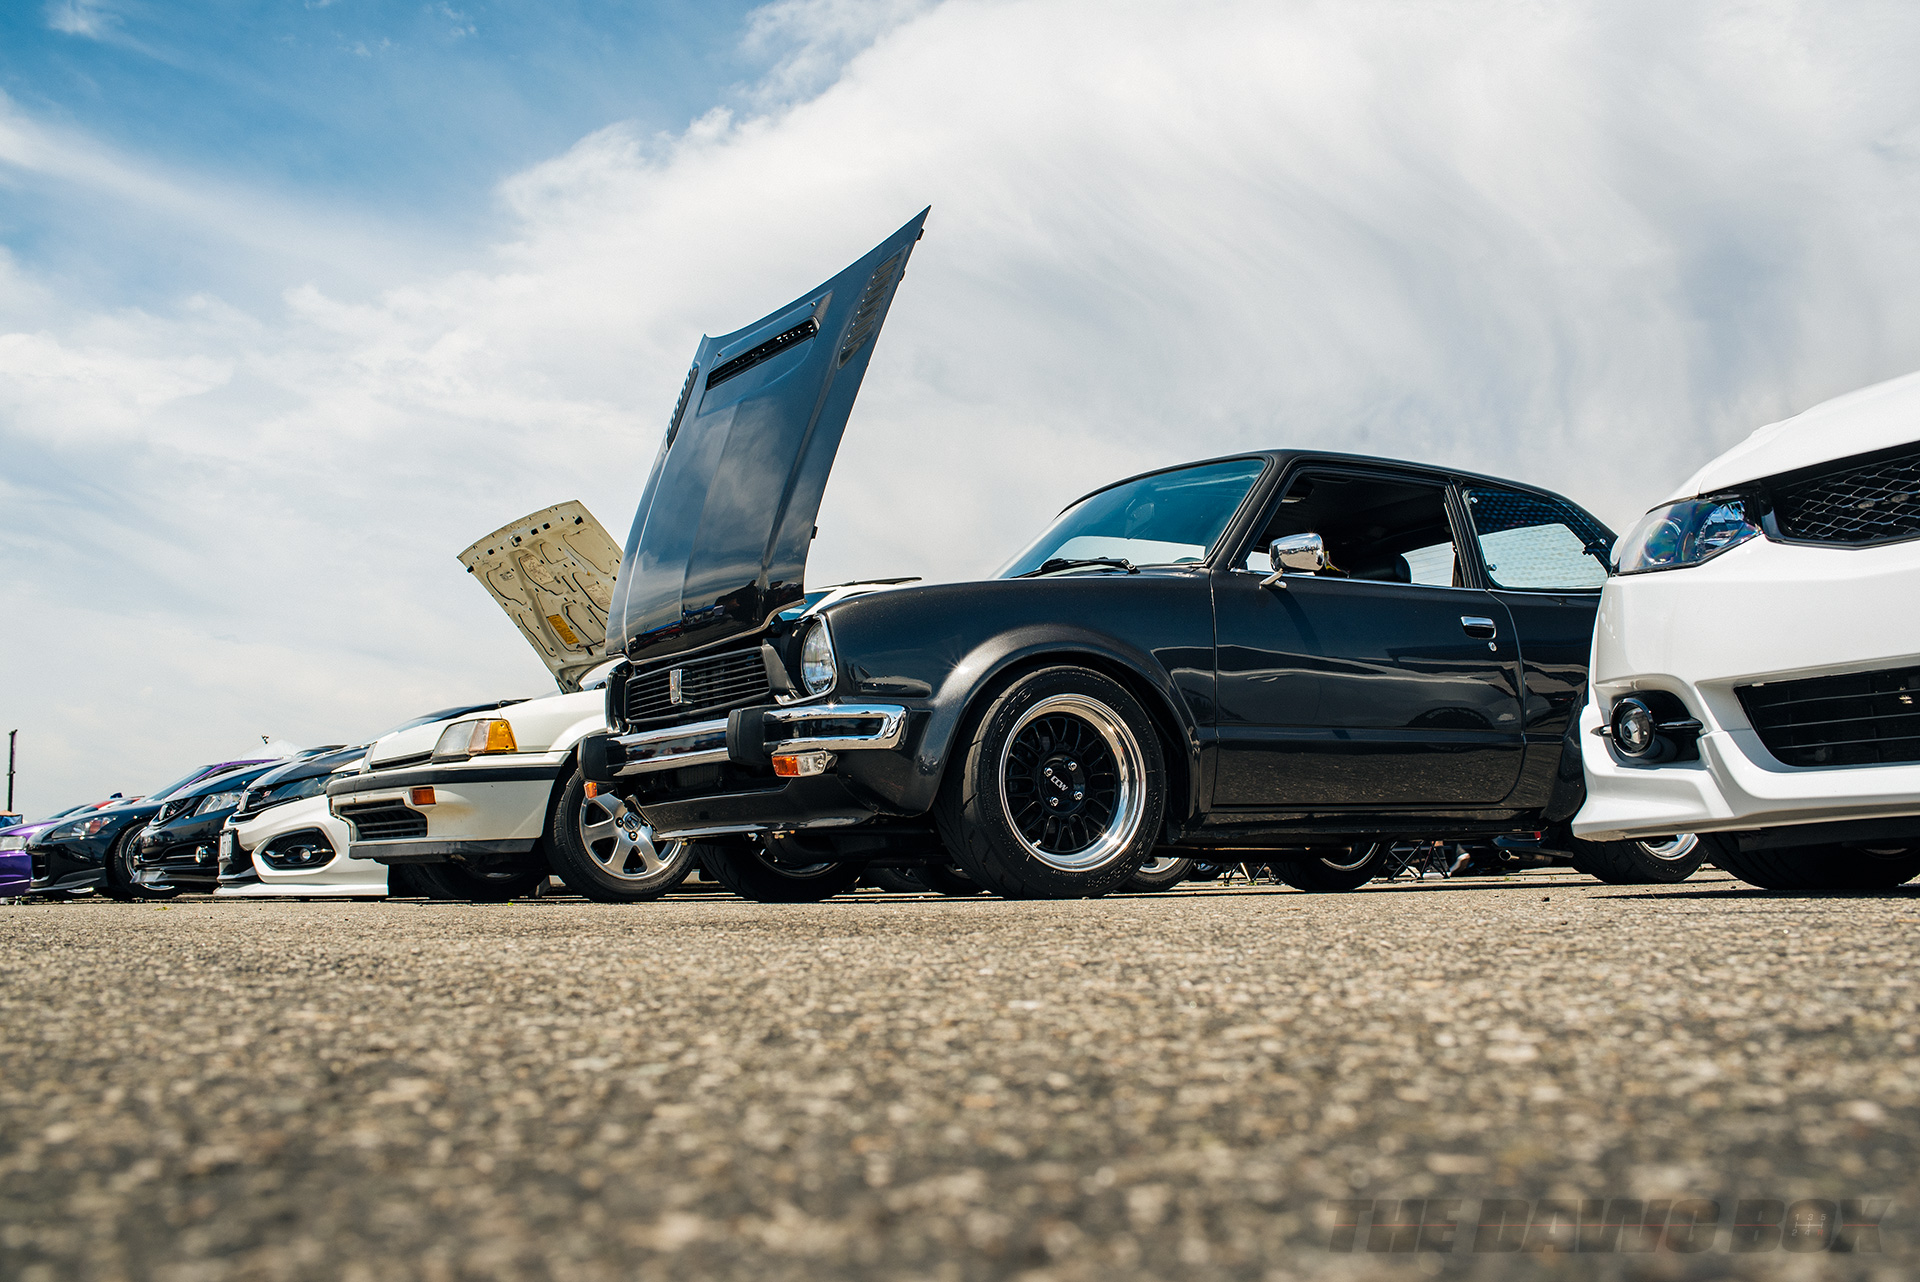 14th Annual Eibach Honda Meet, First Gen Civic